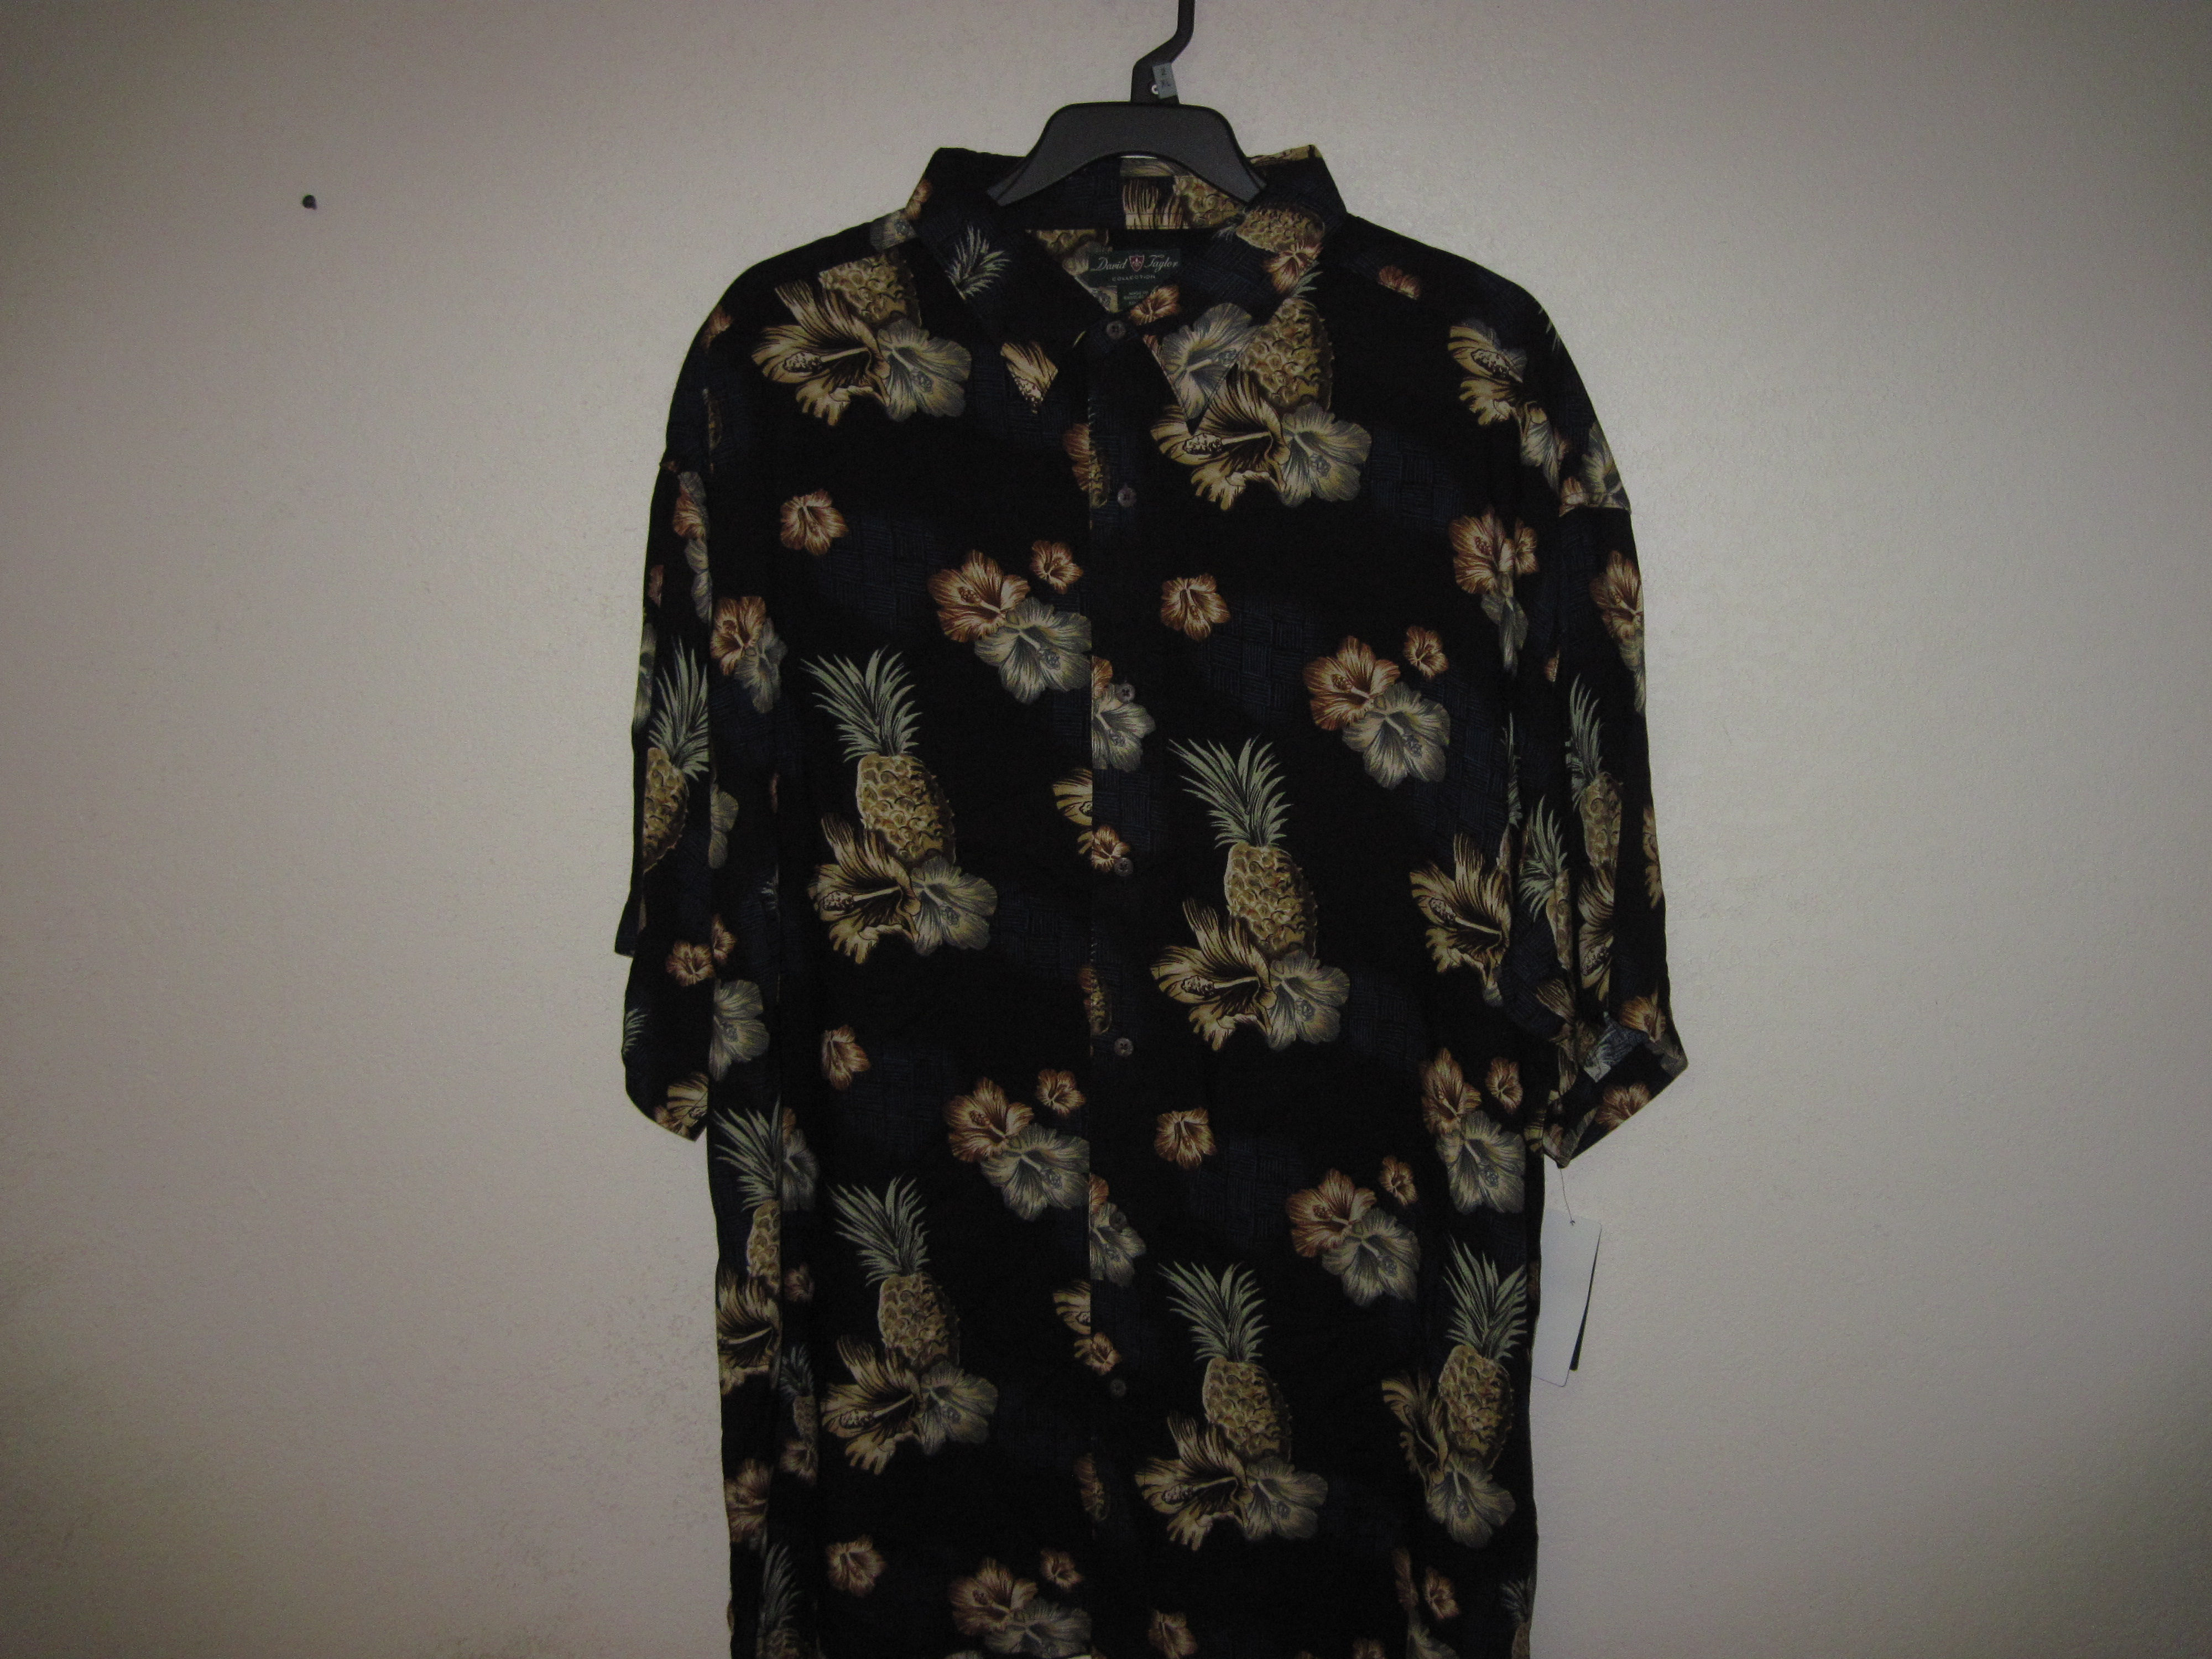 David Taylor Sz 2XL Mens Shirt with Pineapple